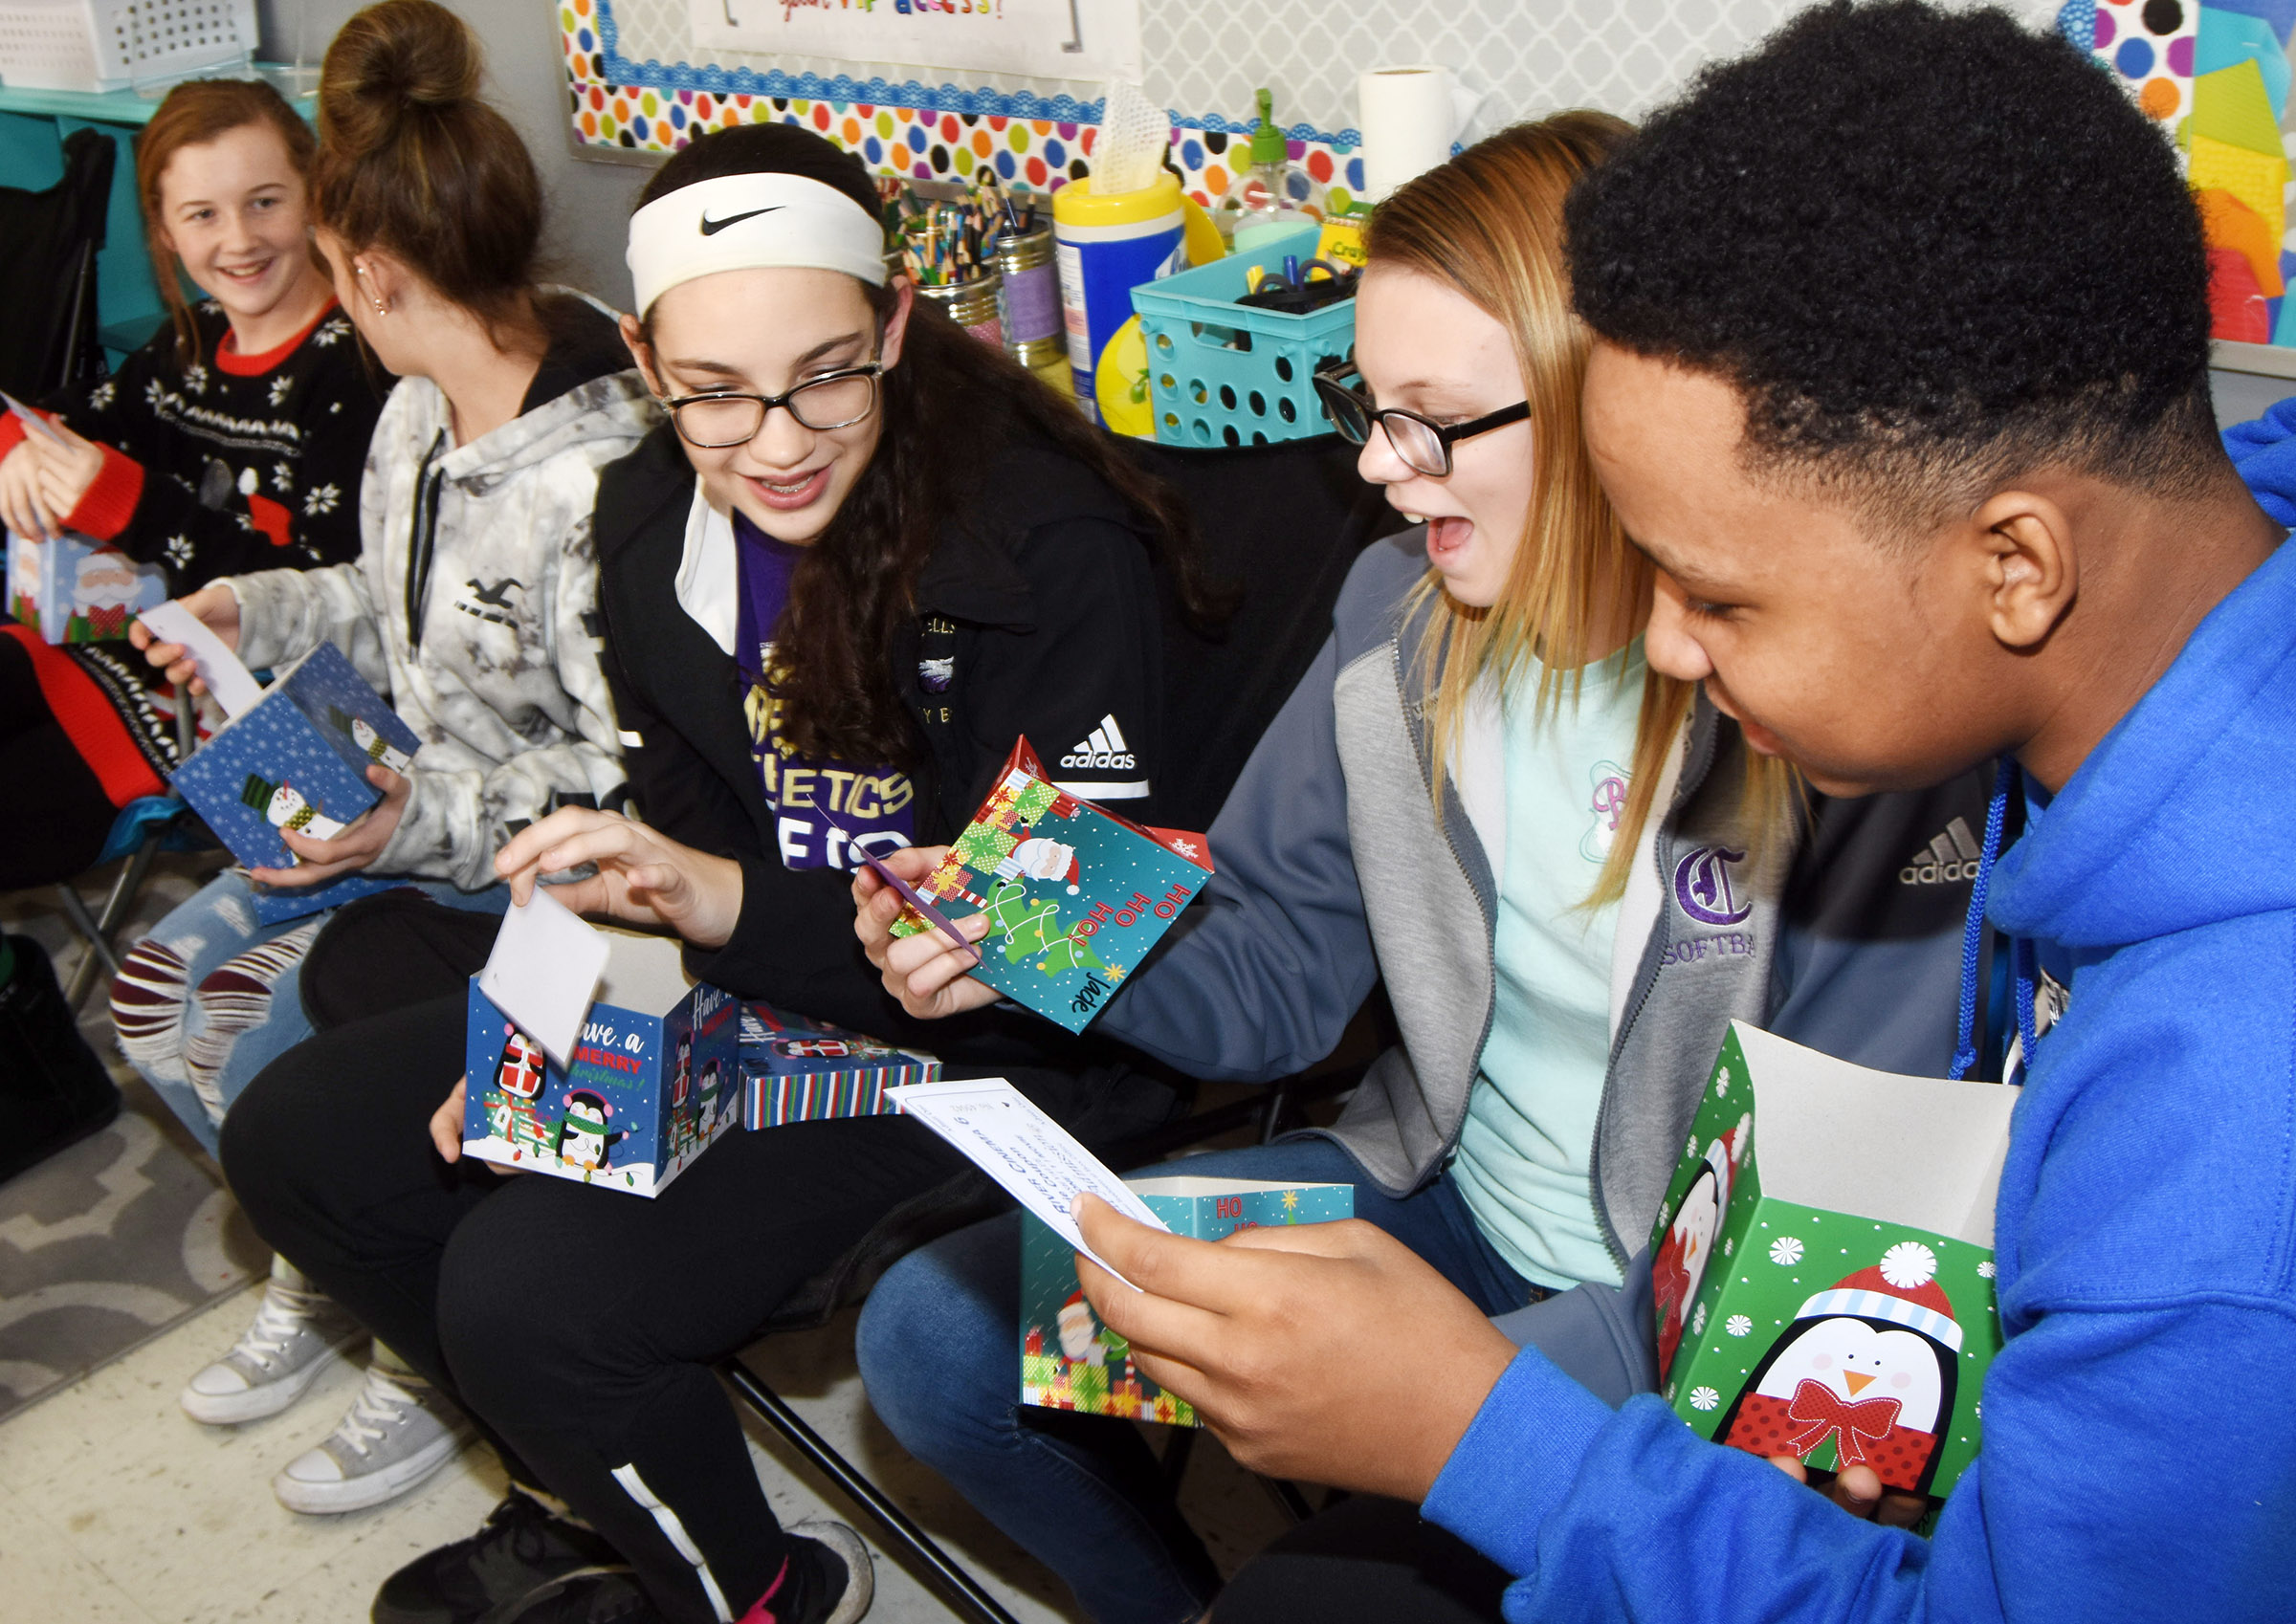 CMS eighth-grade students open their Christmas gifts, donated by local community members. From left are Dakota Slone, Alexis Byers, Mary Russell, Jade Wheeler and Deondre Weathers.